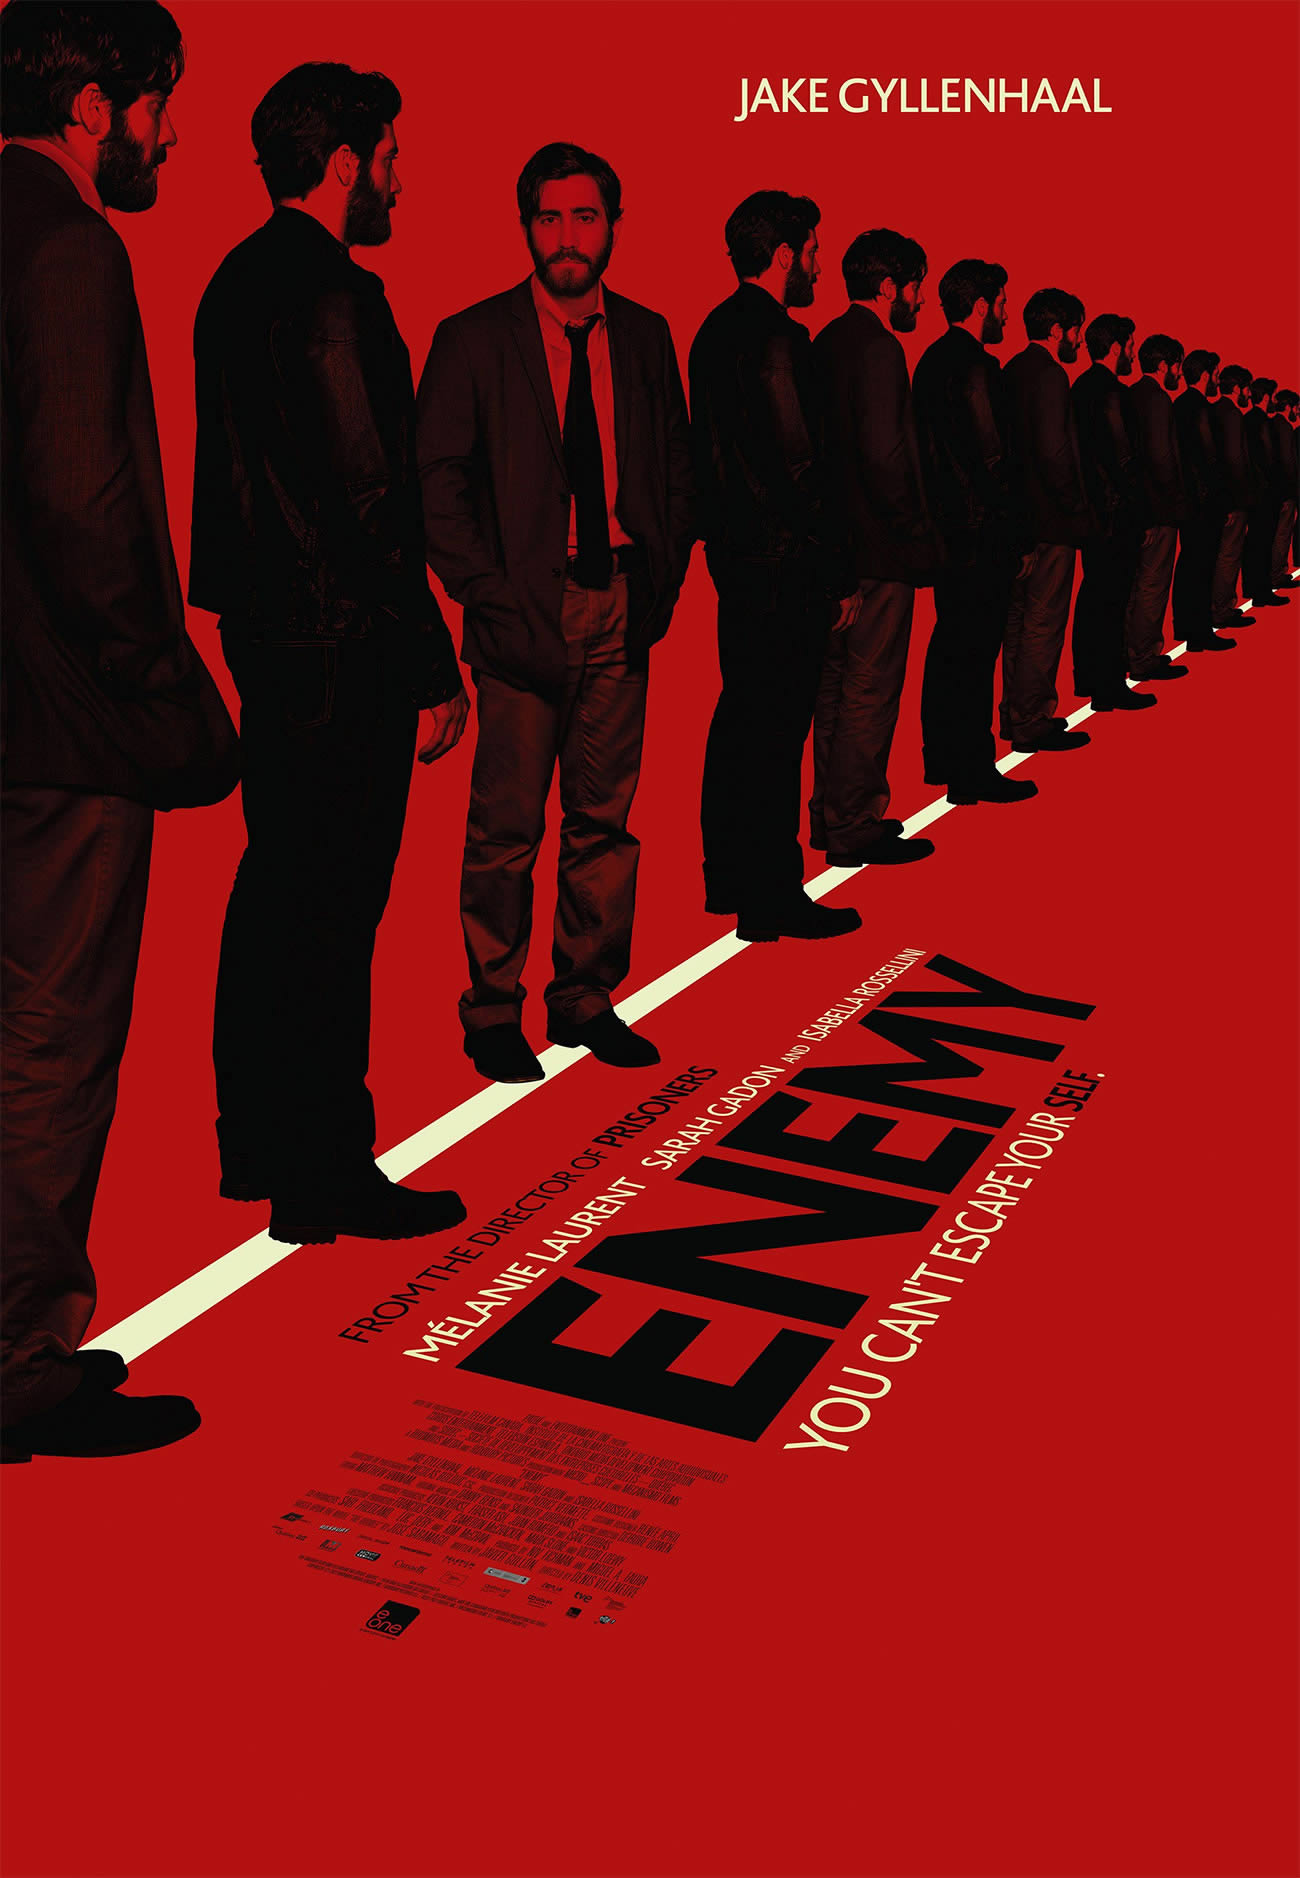 enemy movie poster, man repeated in black, red background